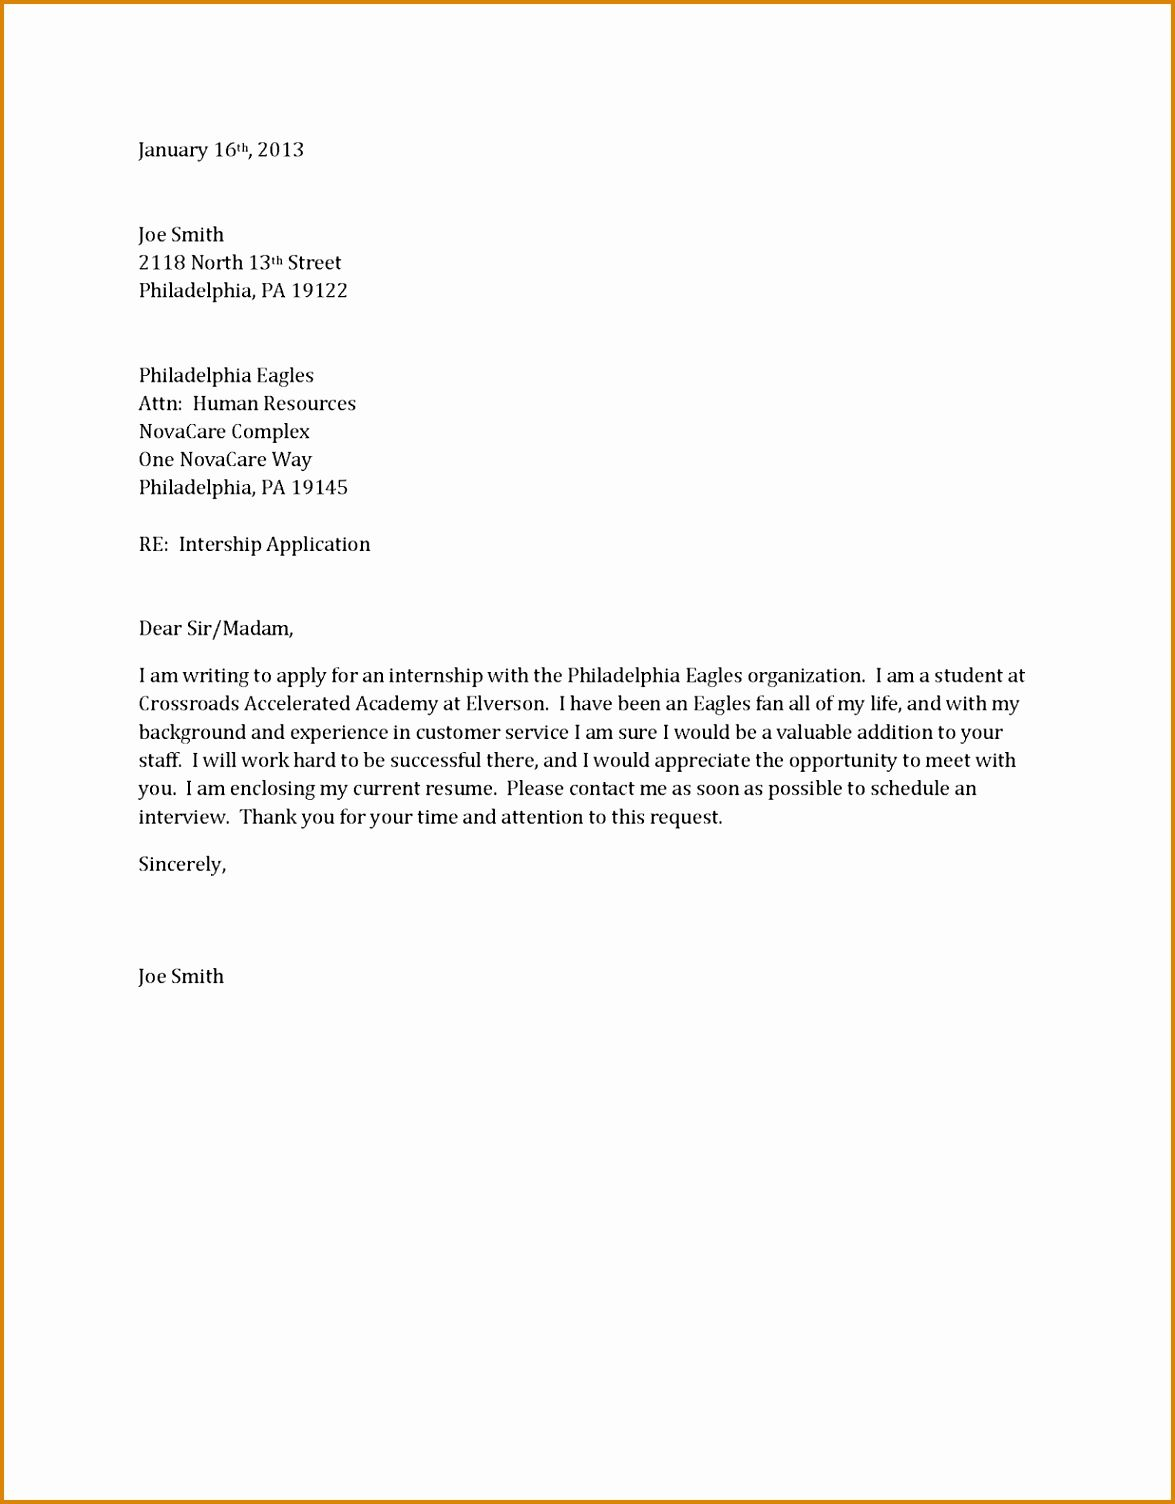 Sample Cover Letter For Job Application Freshers Doc Good Samples A